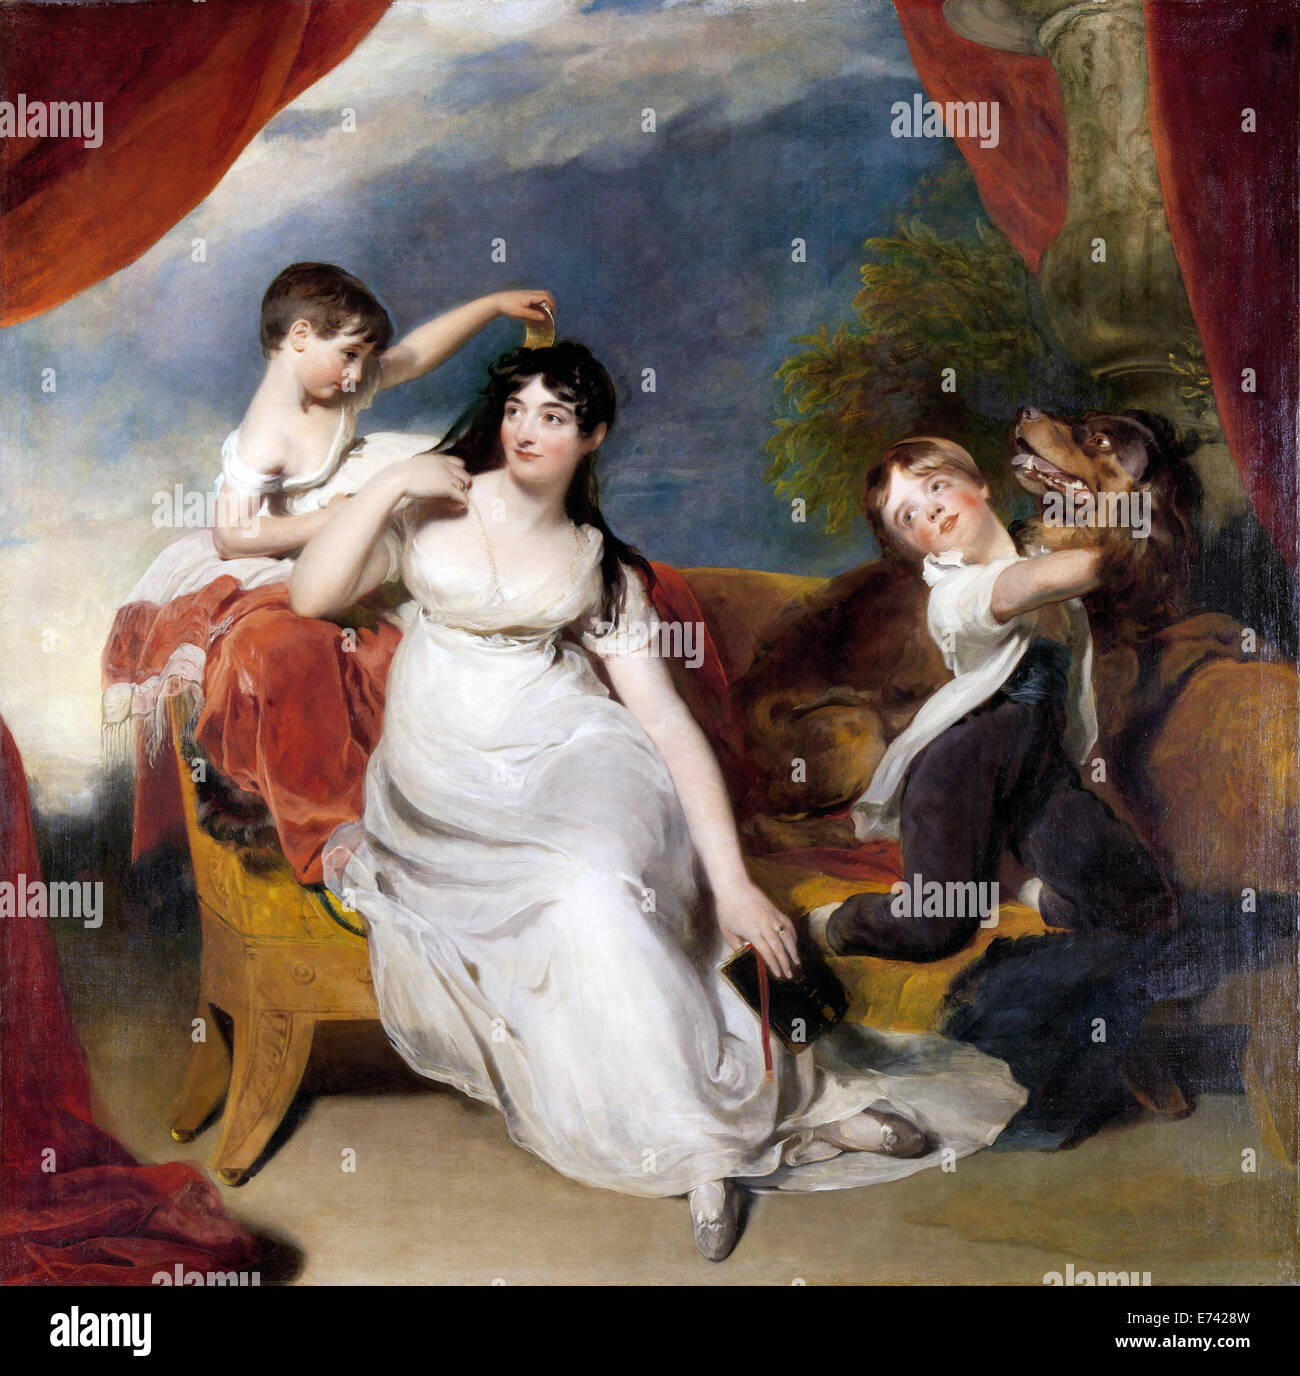 Maria Mathilda Bingham with Two of her Children - by Thomas Lawrence, 1810 - 1818 - Stock Image